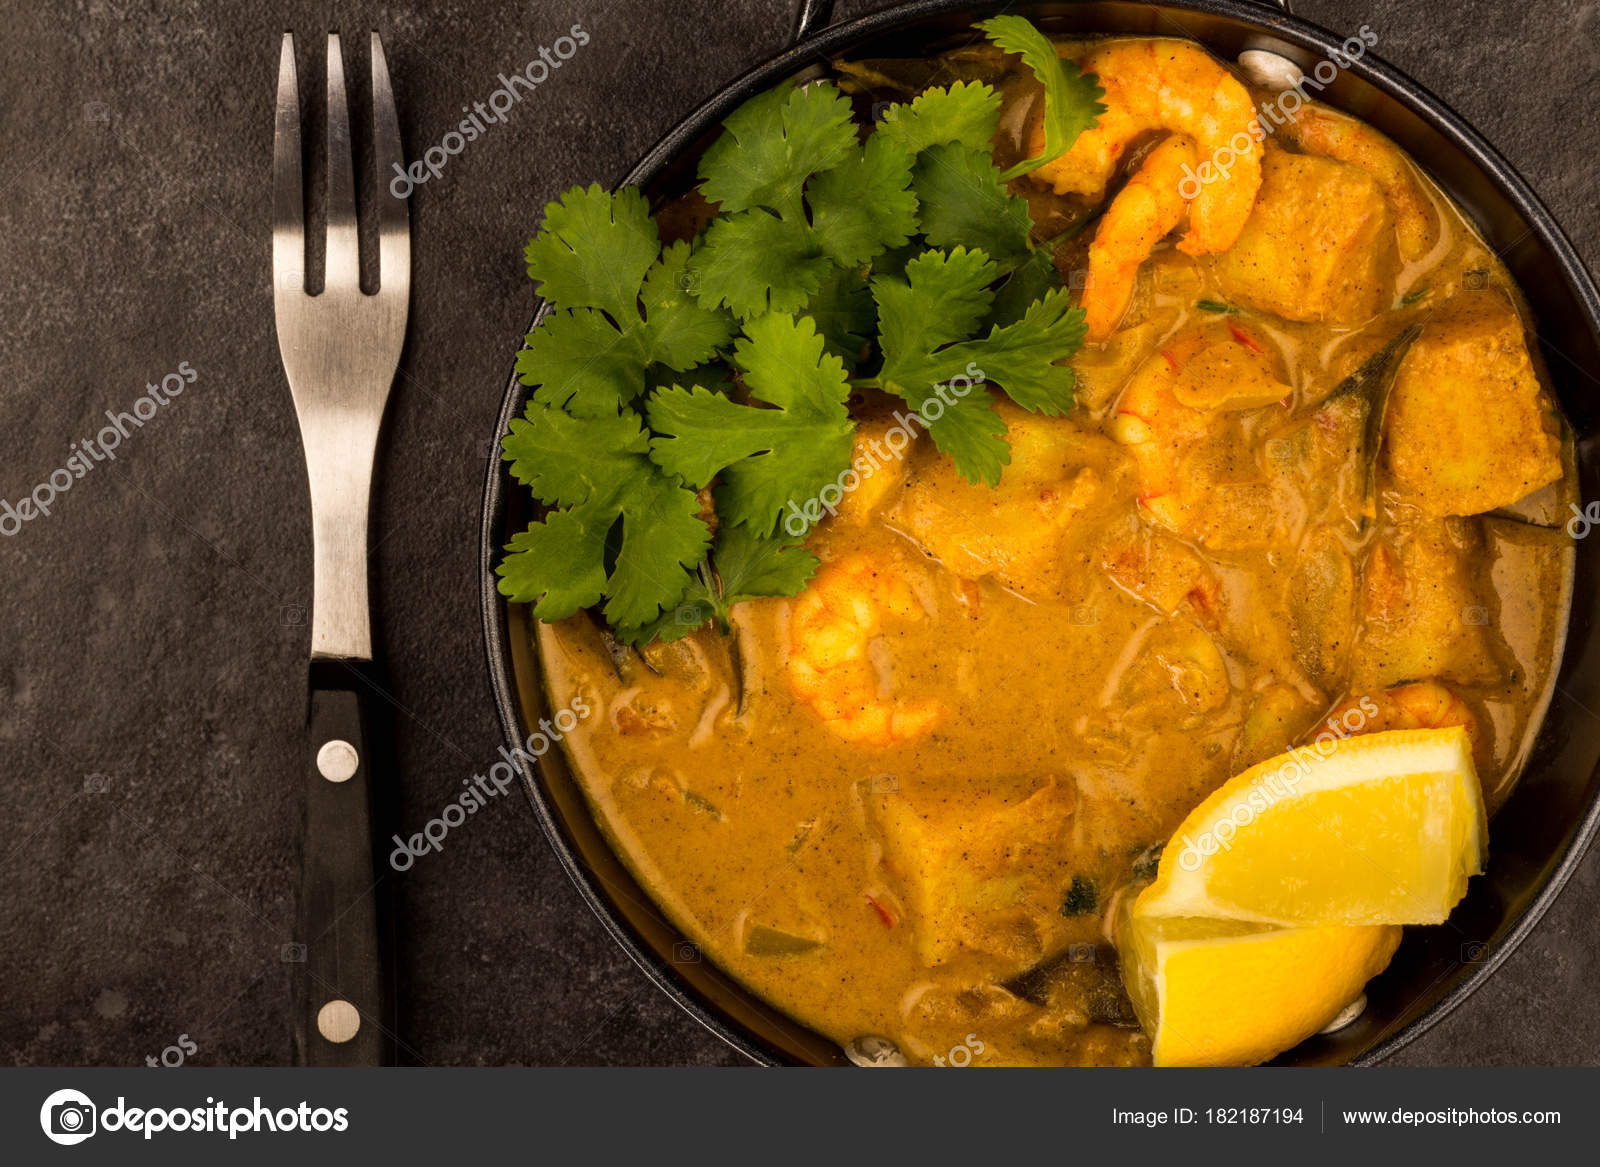 Sri lanka stile re curry di gamberi con limone e coriandolo erbe